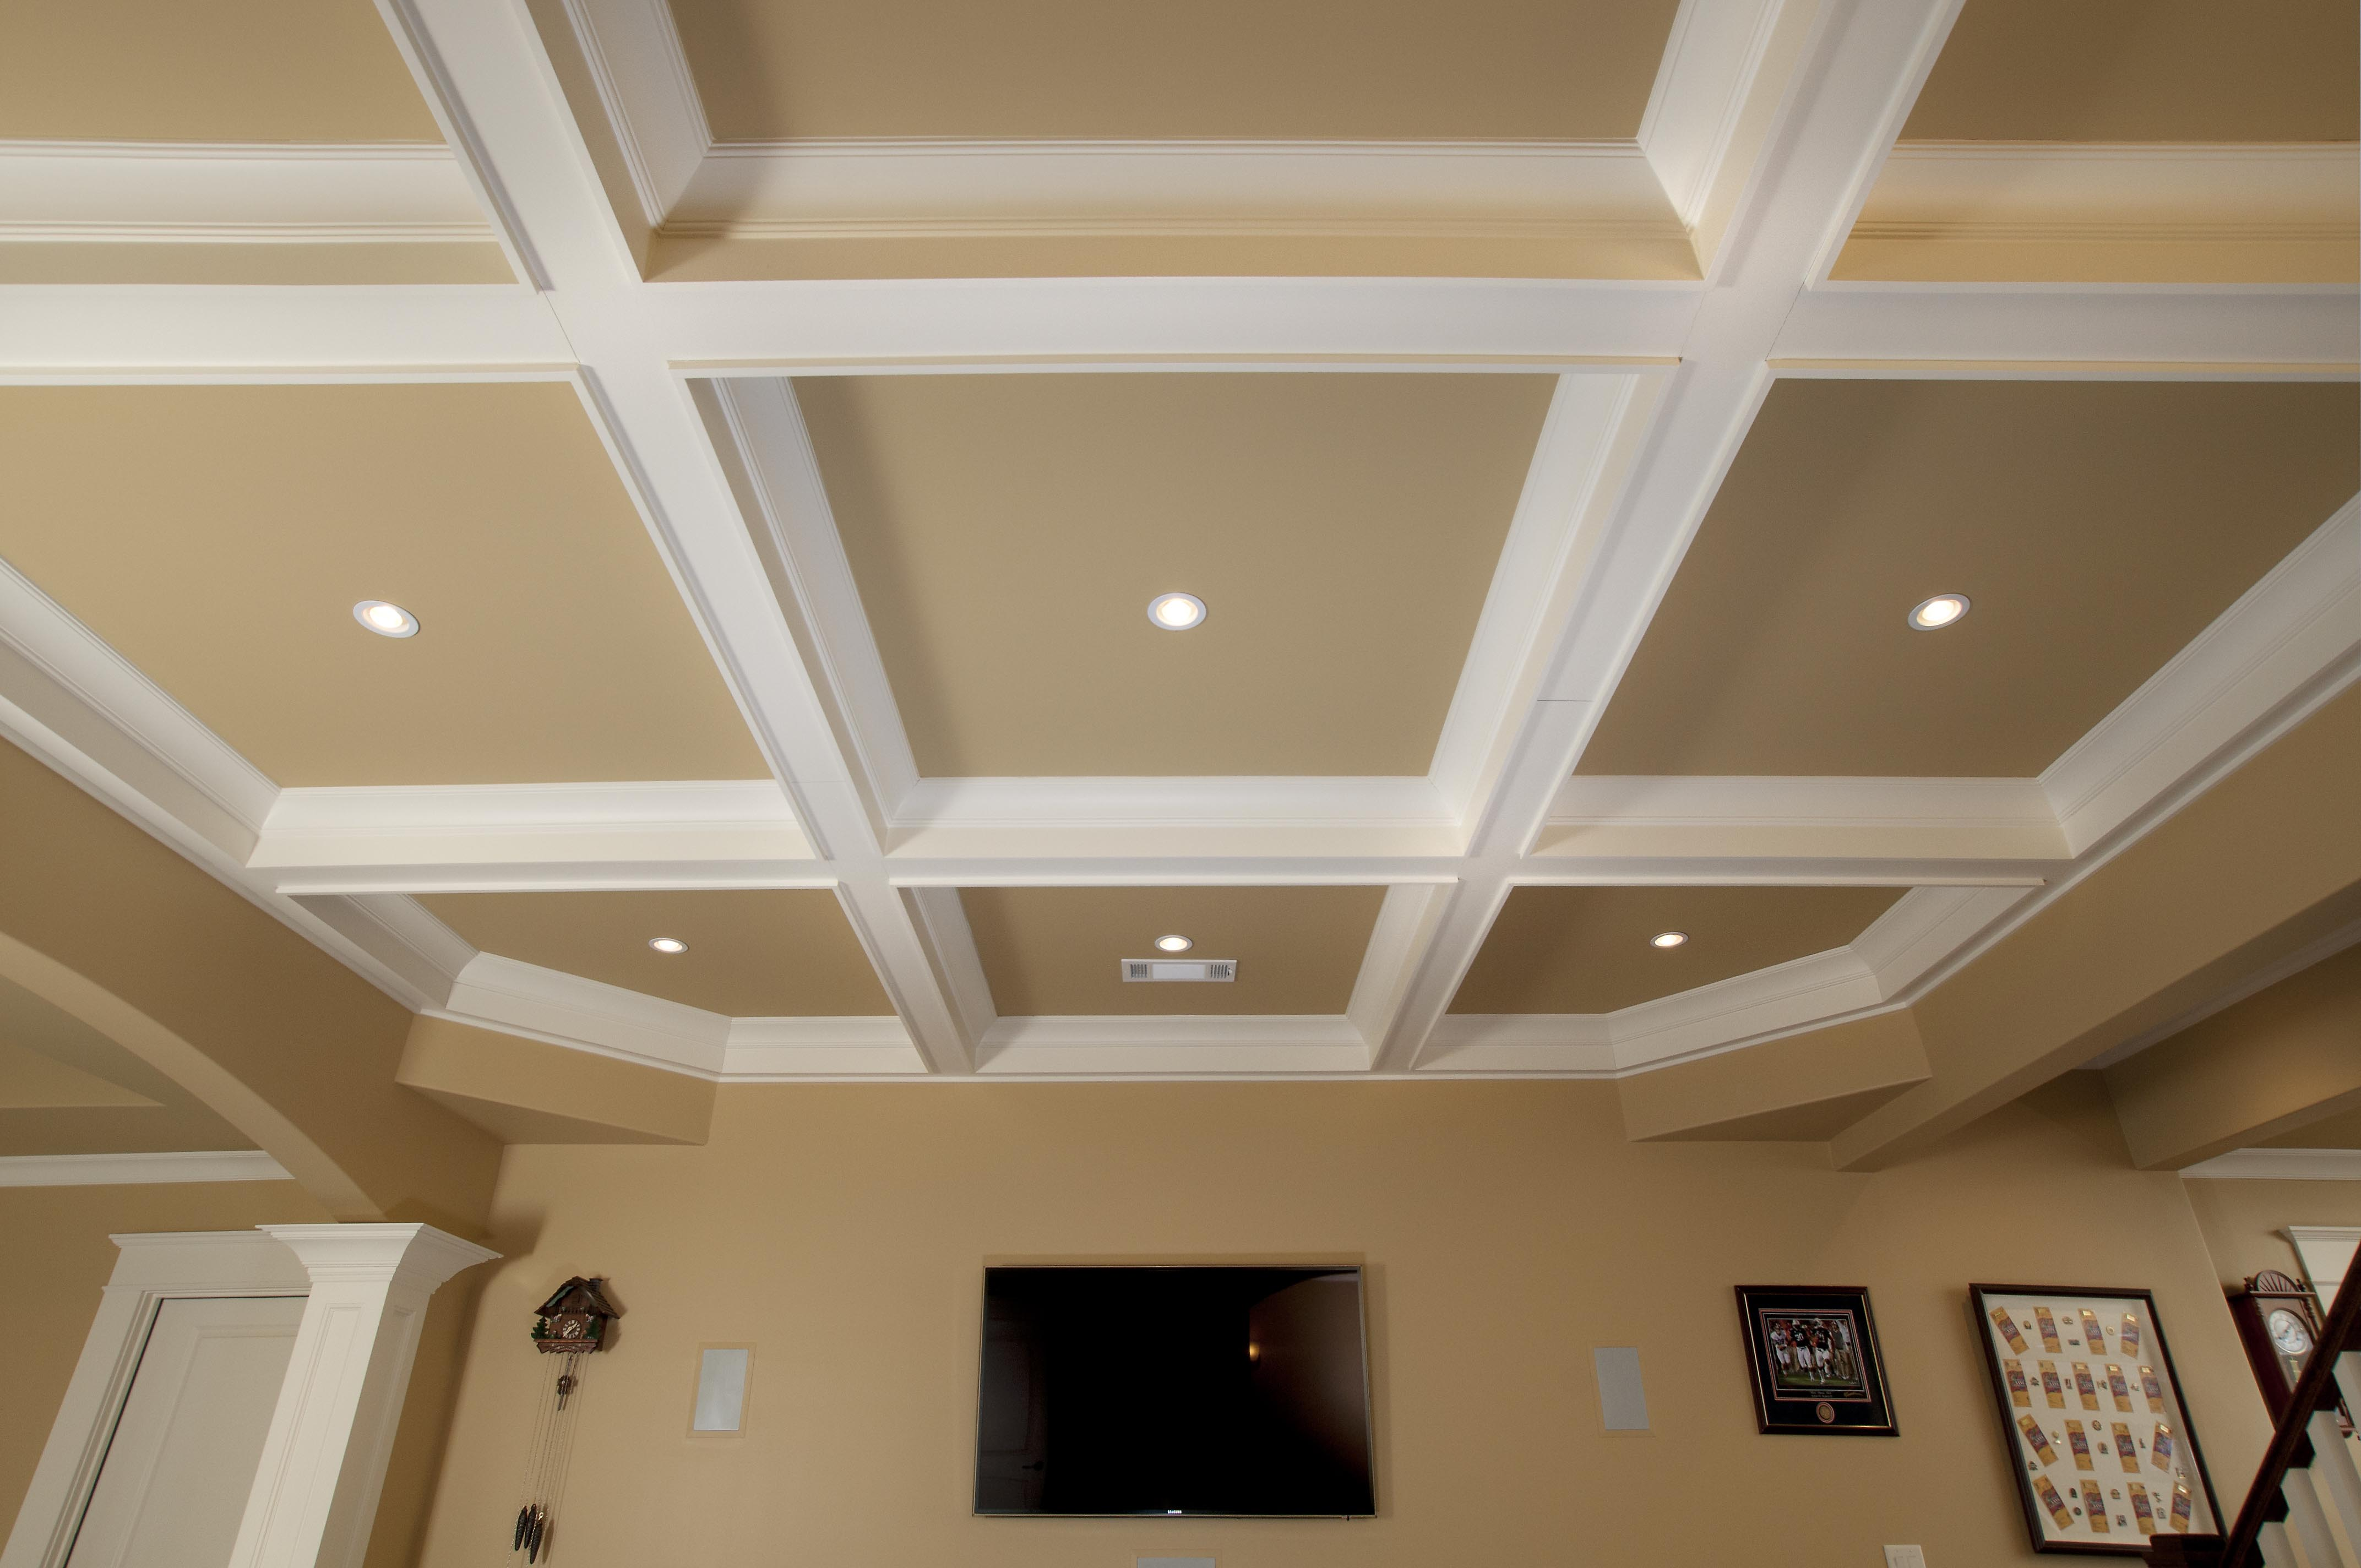 Ceiling lightening coffered ceiling with chandelier and wooden stunning coffered ceiling in white and tan with lights combained with cream wall plus lcd tv doublecrazyfo Image collections